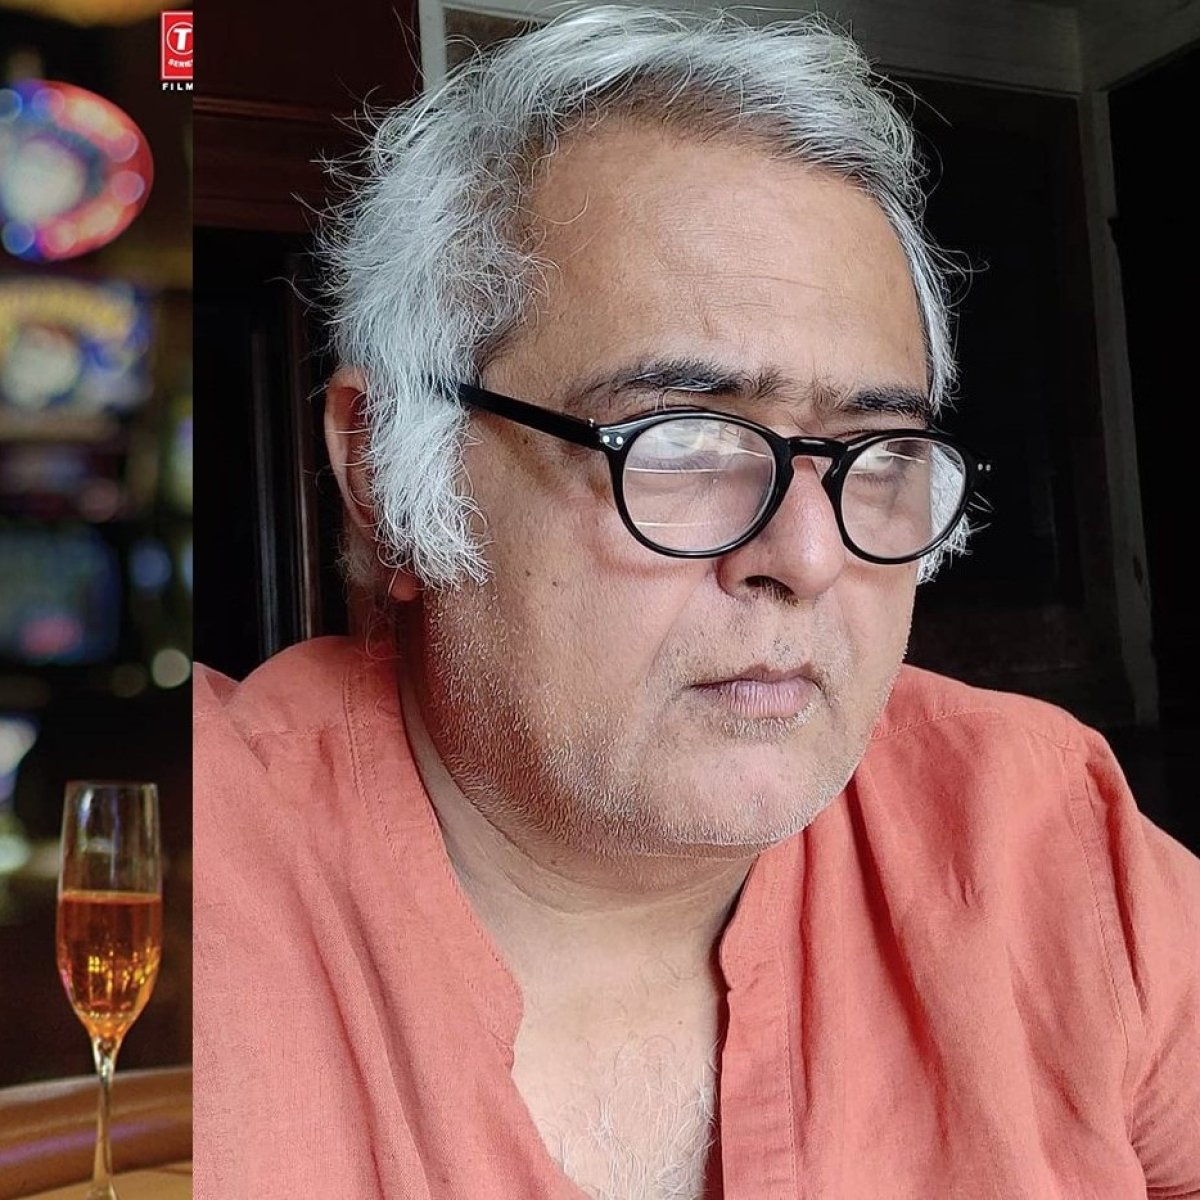 'I stood by you and now...': Kangana Ranaut and Hansal Mehta lock horns on Twitter after he calls 'Simran' a mistake